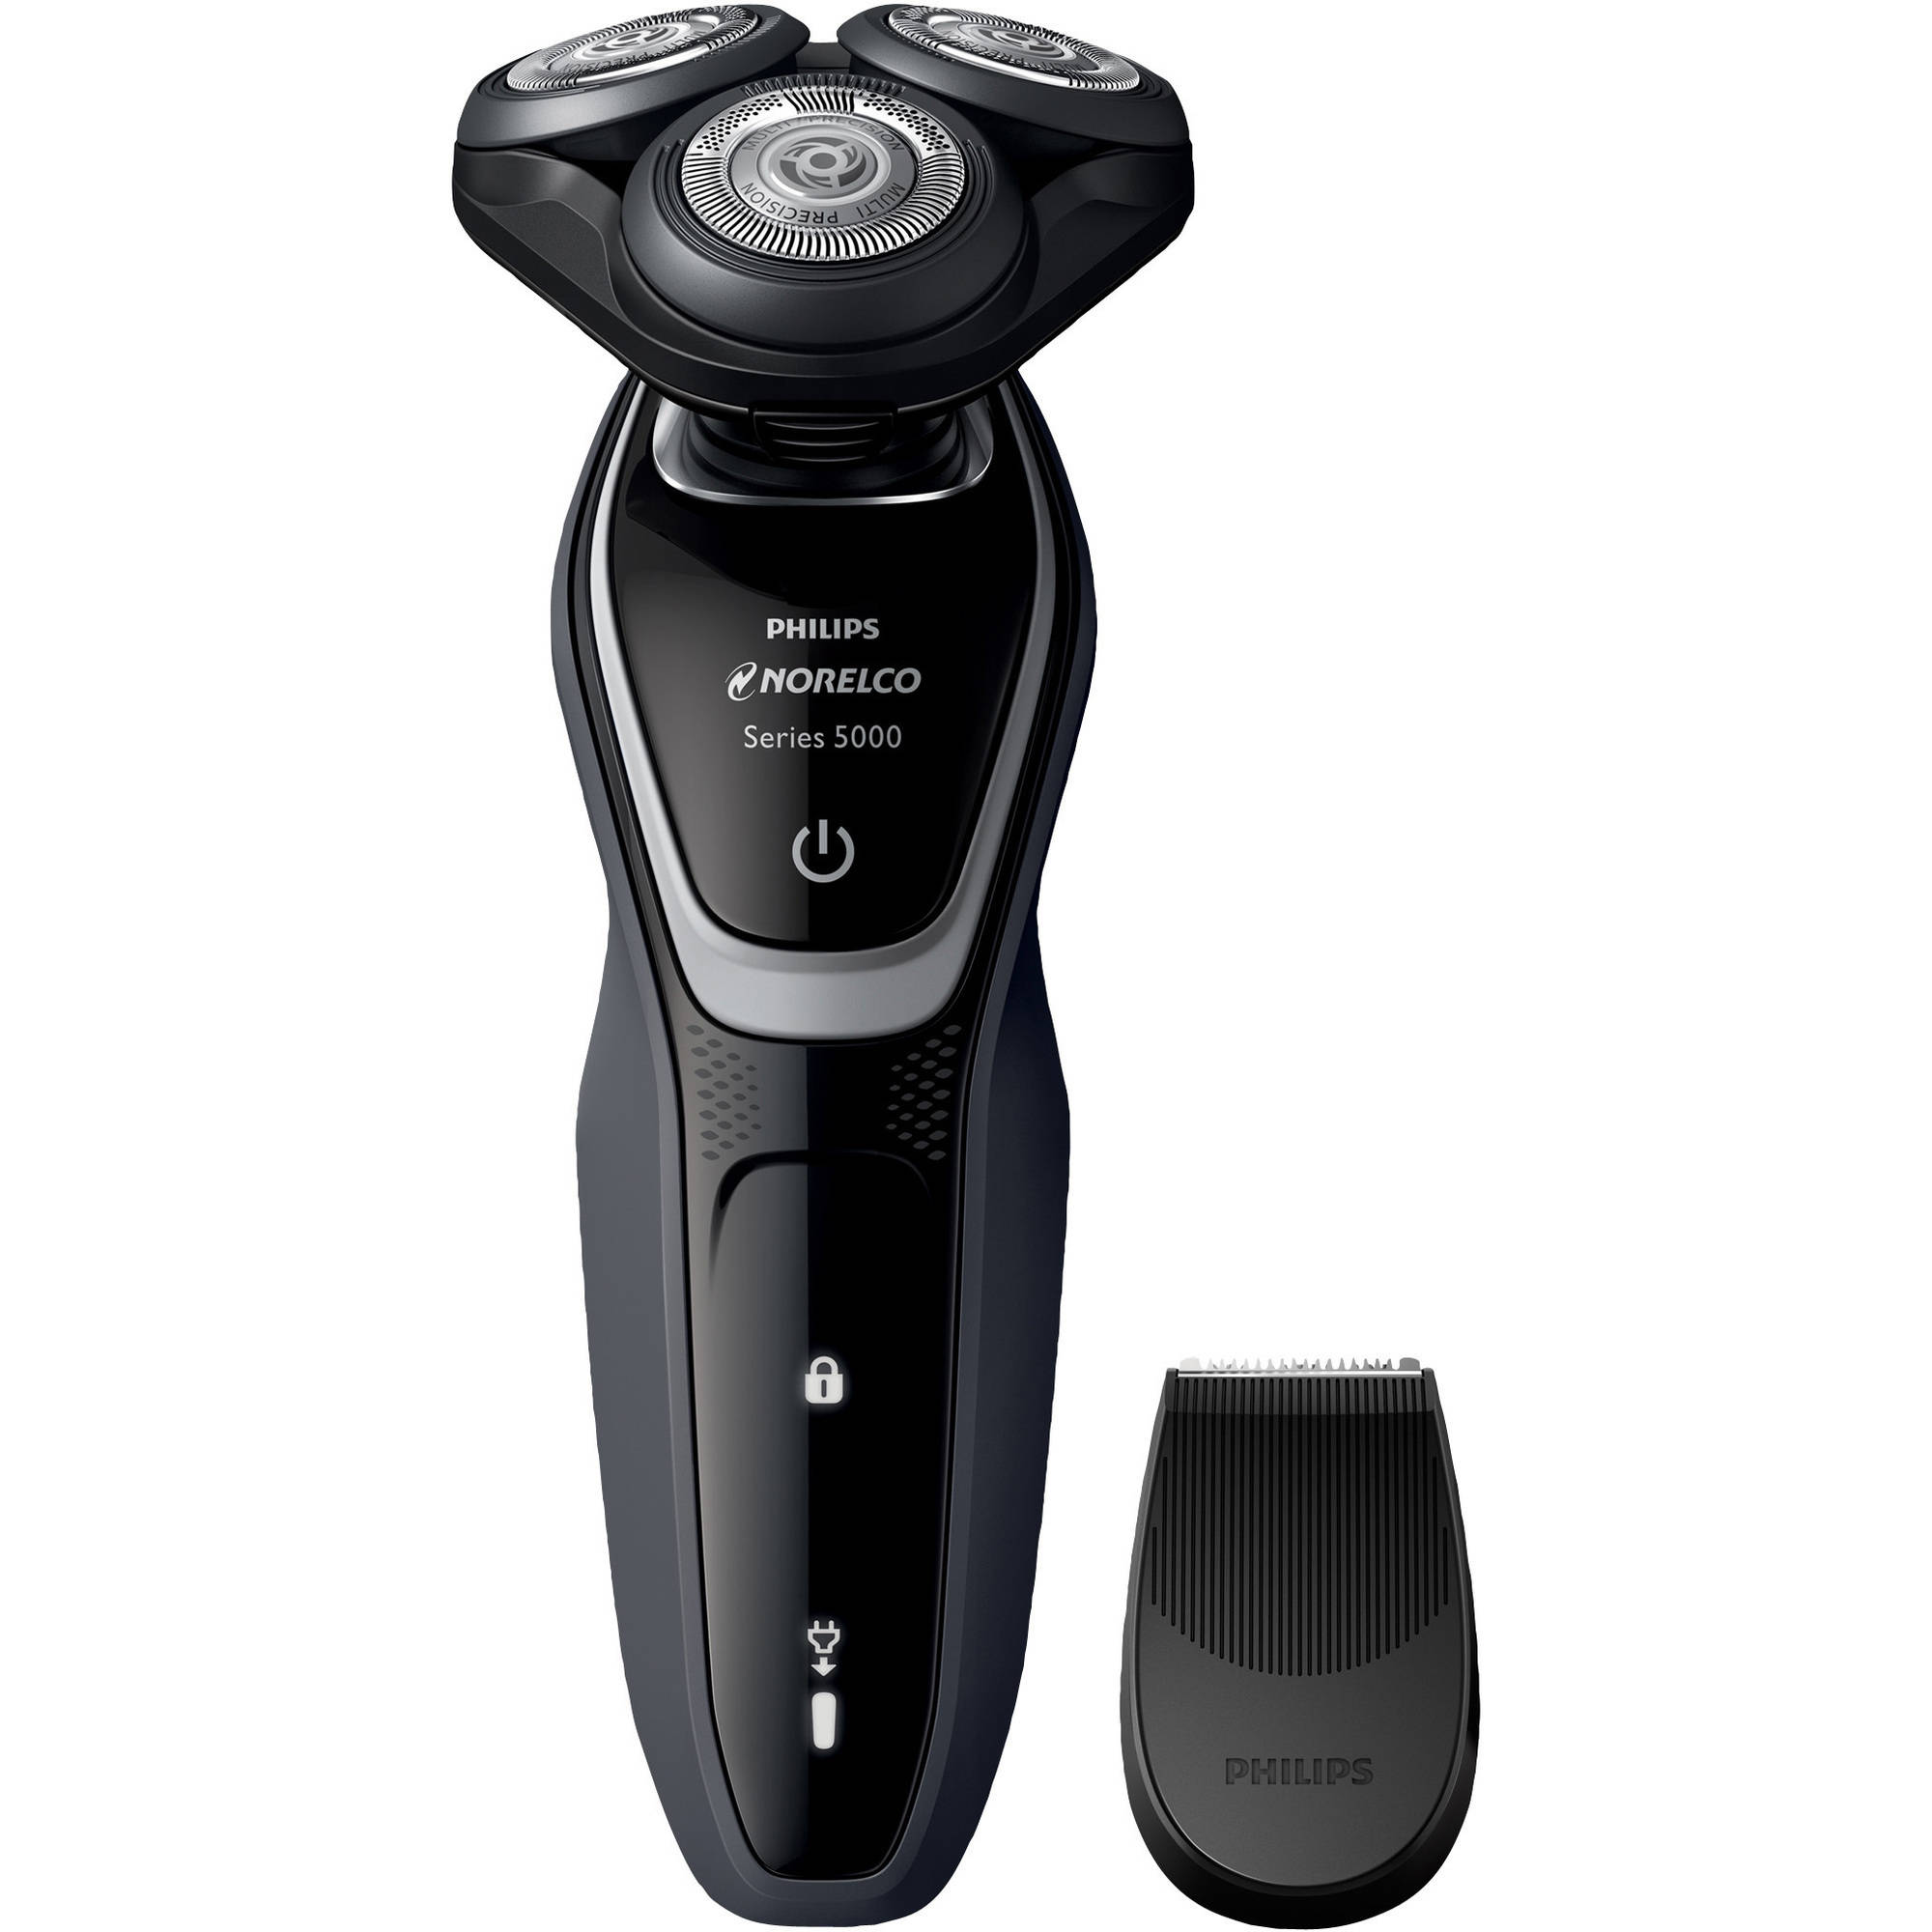 Philips Norelco Shaver 5100, Model #S5210/81